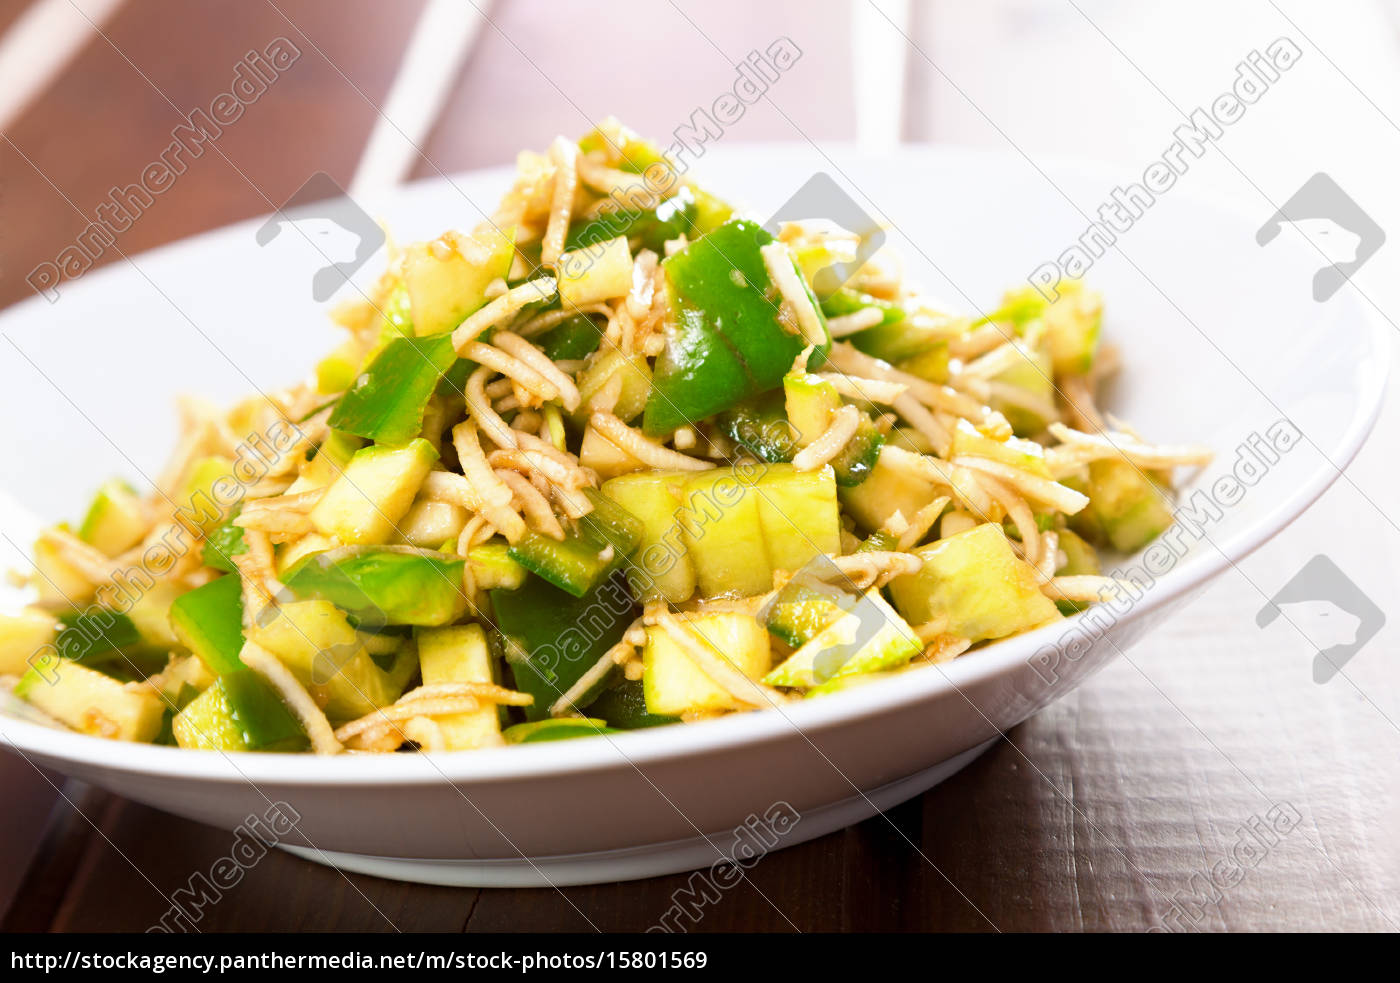 celery, salad, with, peppers, celery, salad, with - 15801569